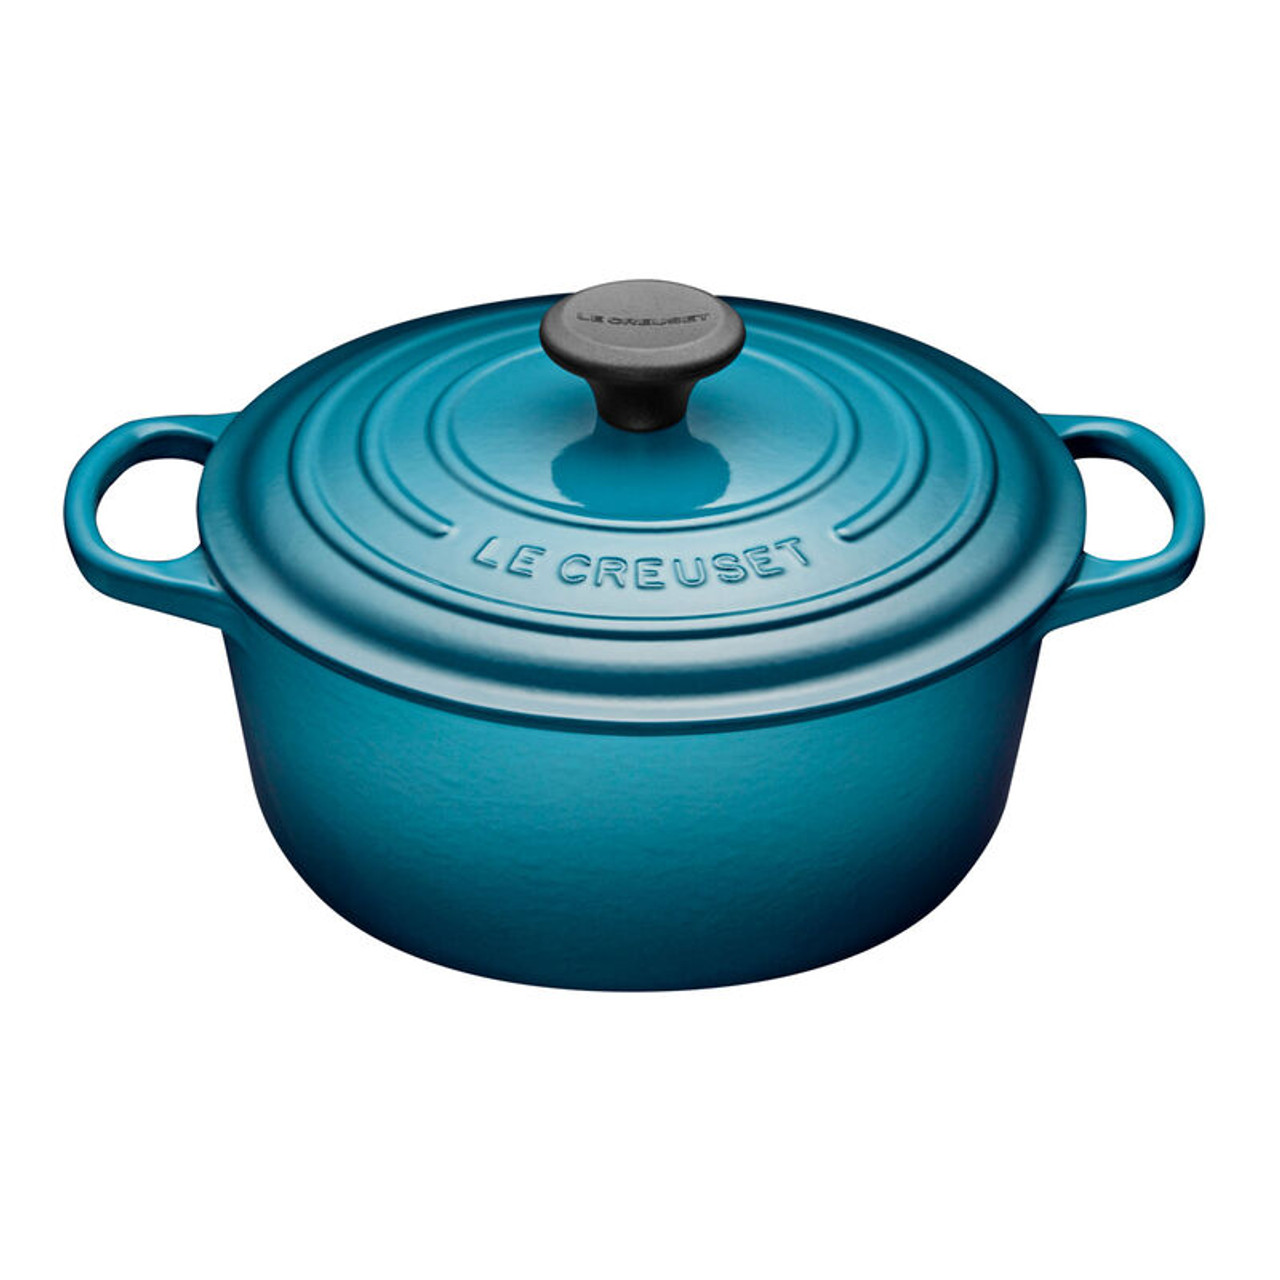 LE CREUSET ROUND FRENCH OVEN 4.2L